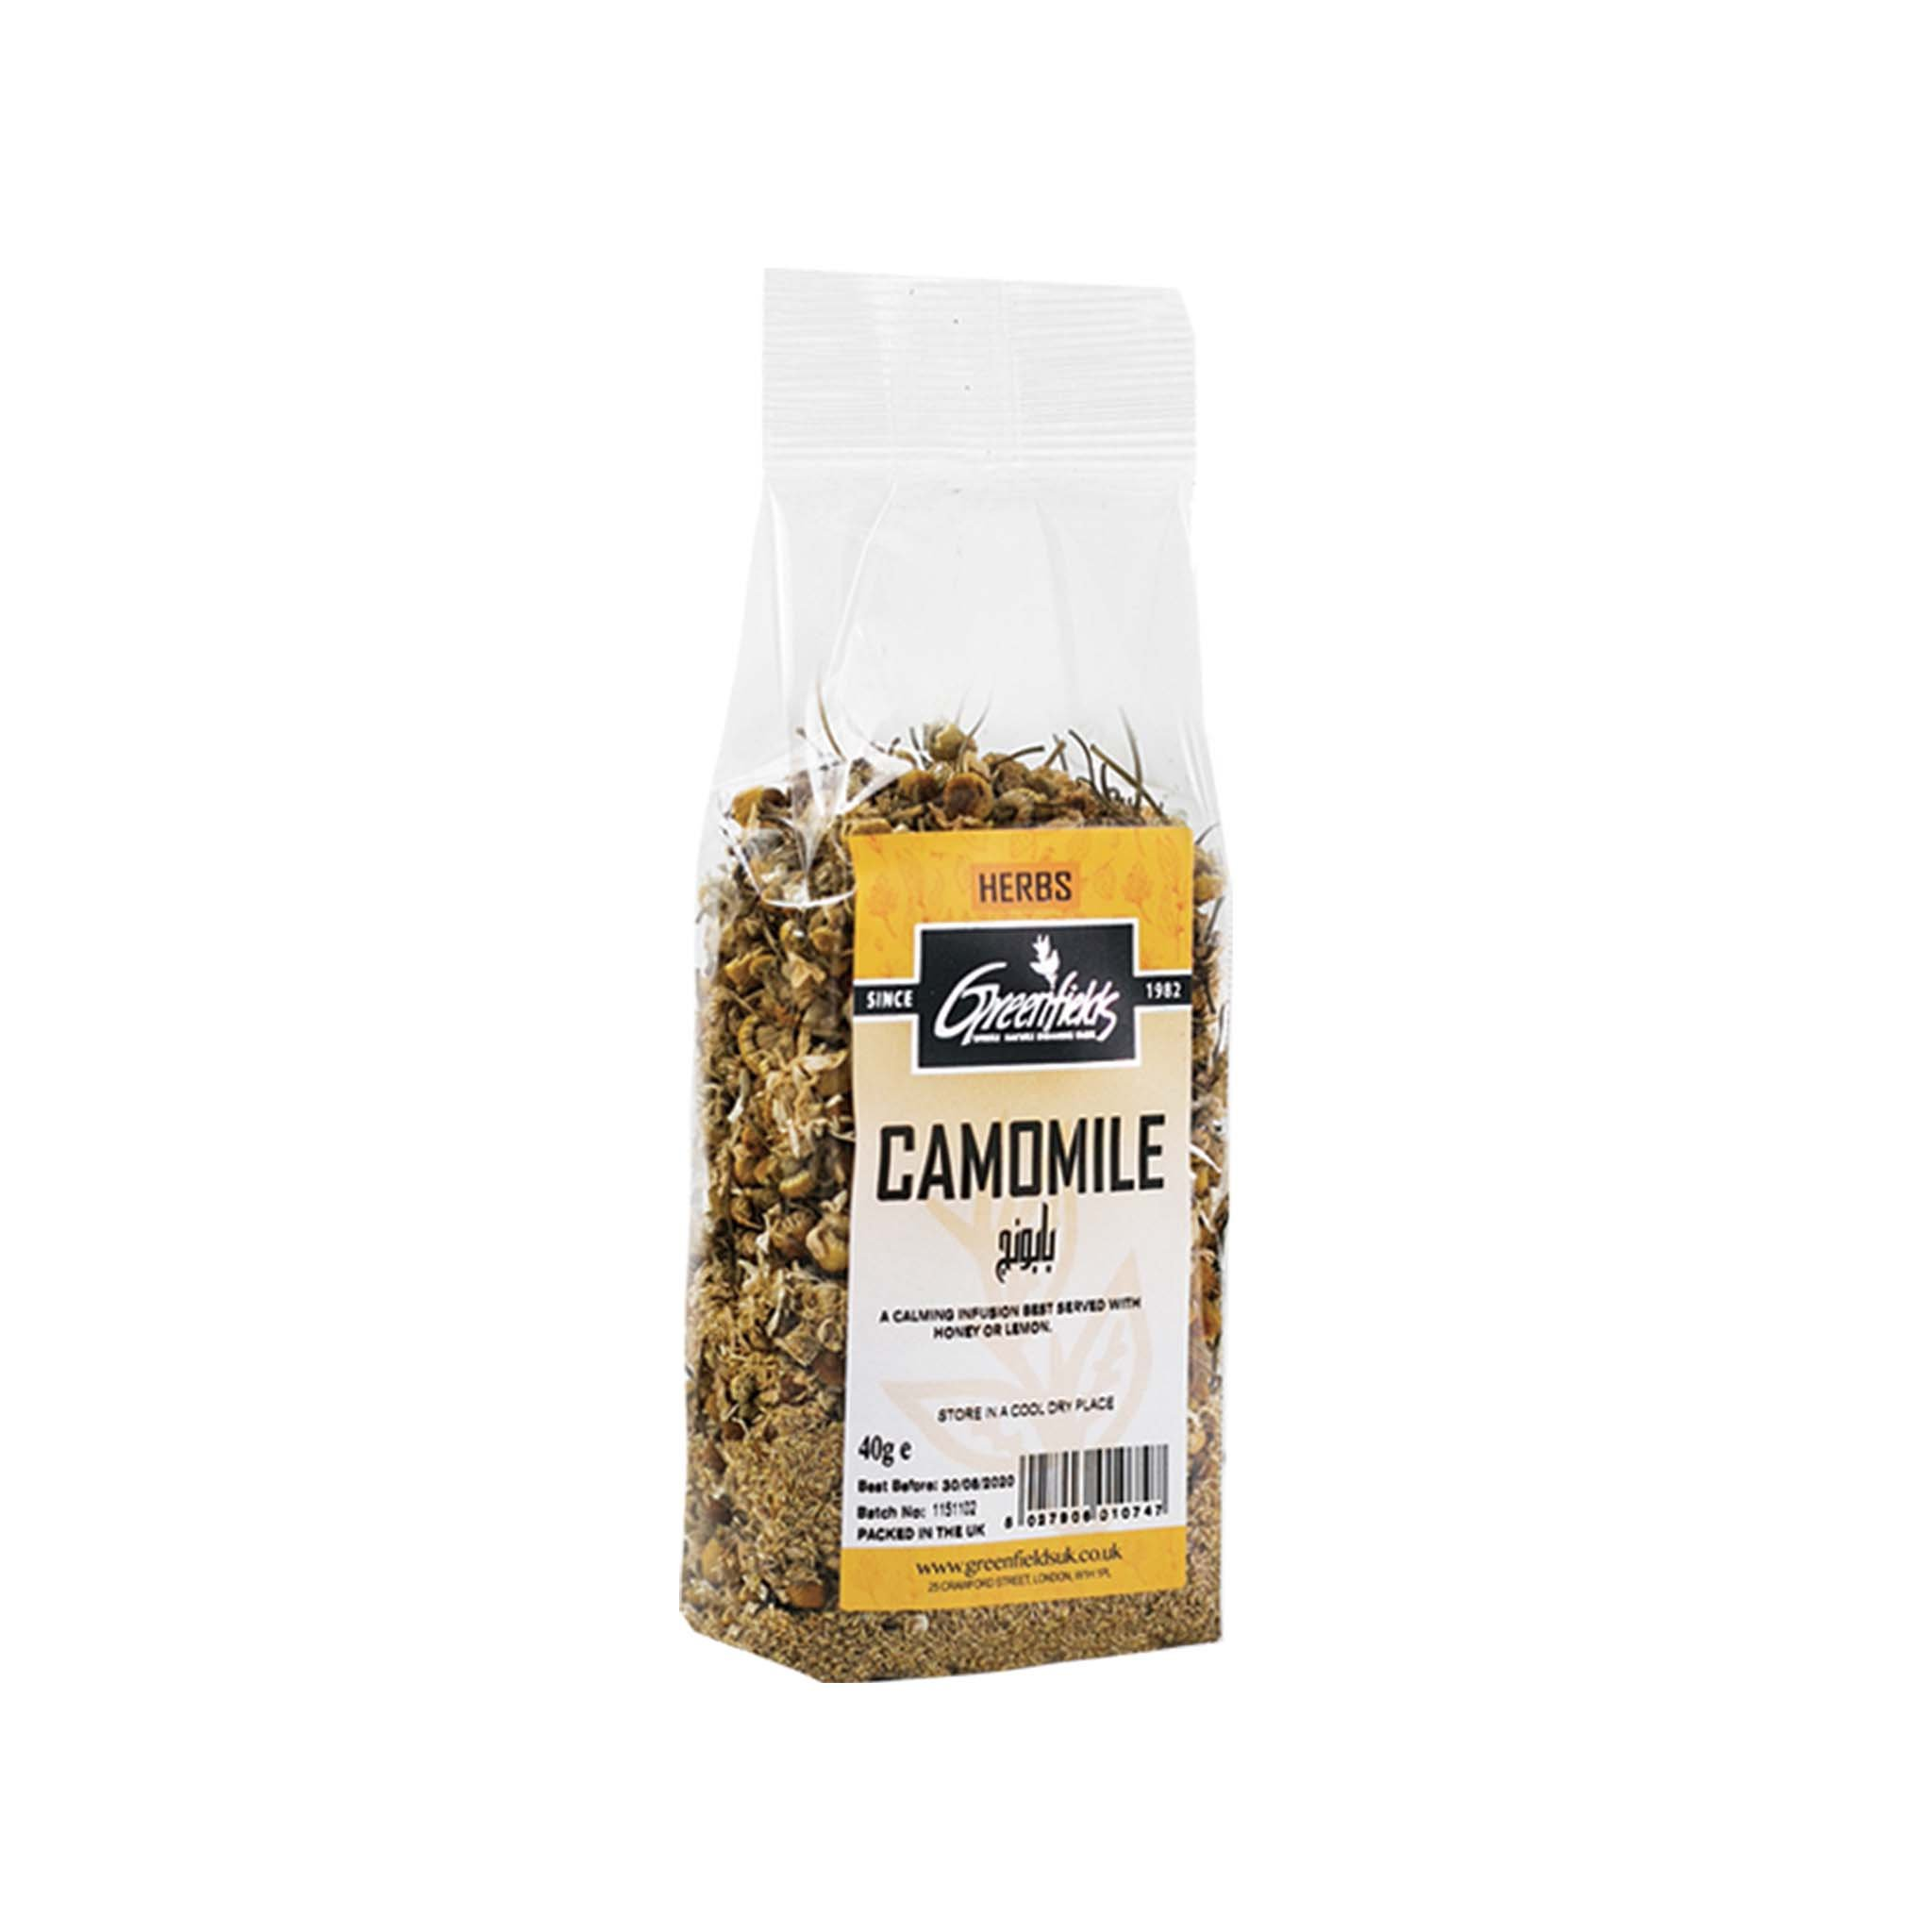 Greenfields Camomile